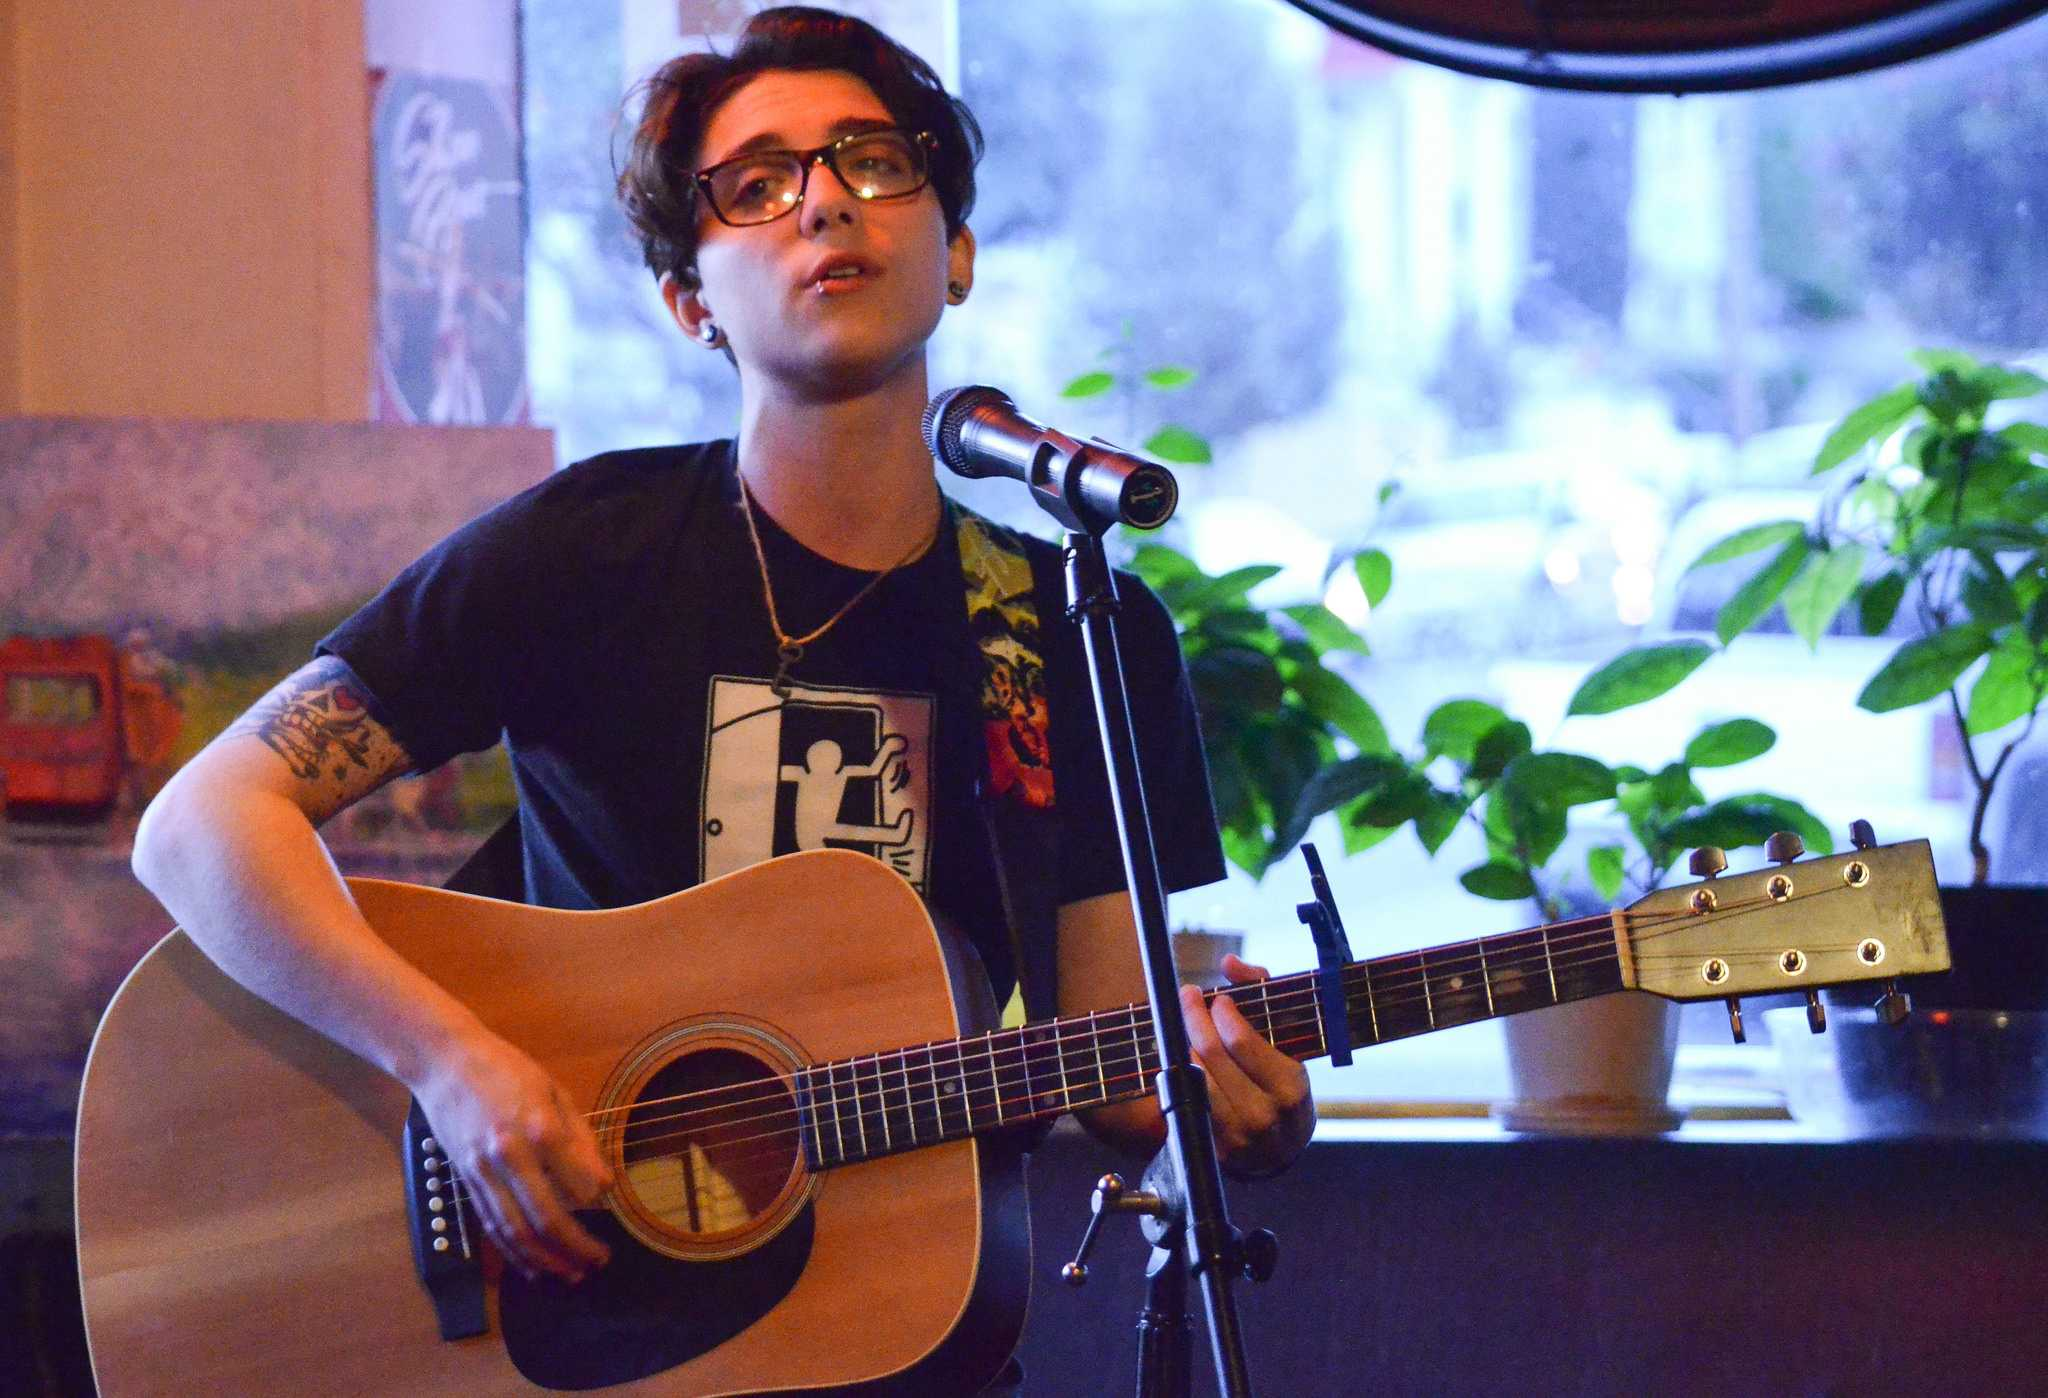 Ryan Cassata performs two songs at the Sacred Grounds Cafe open mic on Thursday April 9. (Melissa Minton / Xpress)